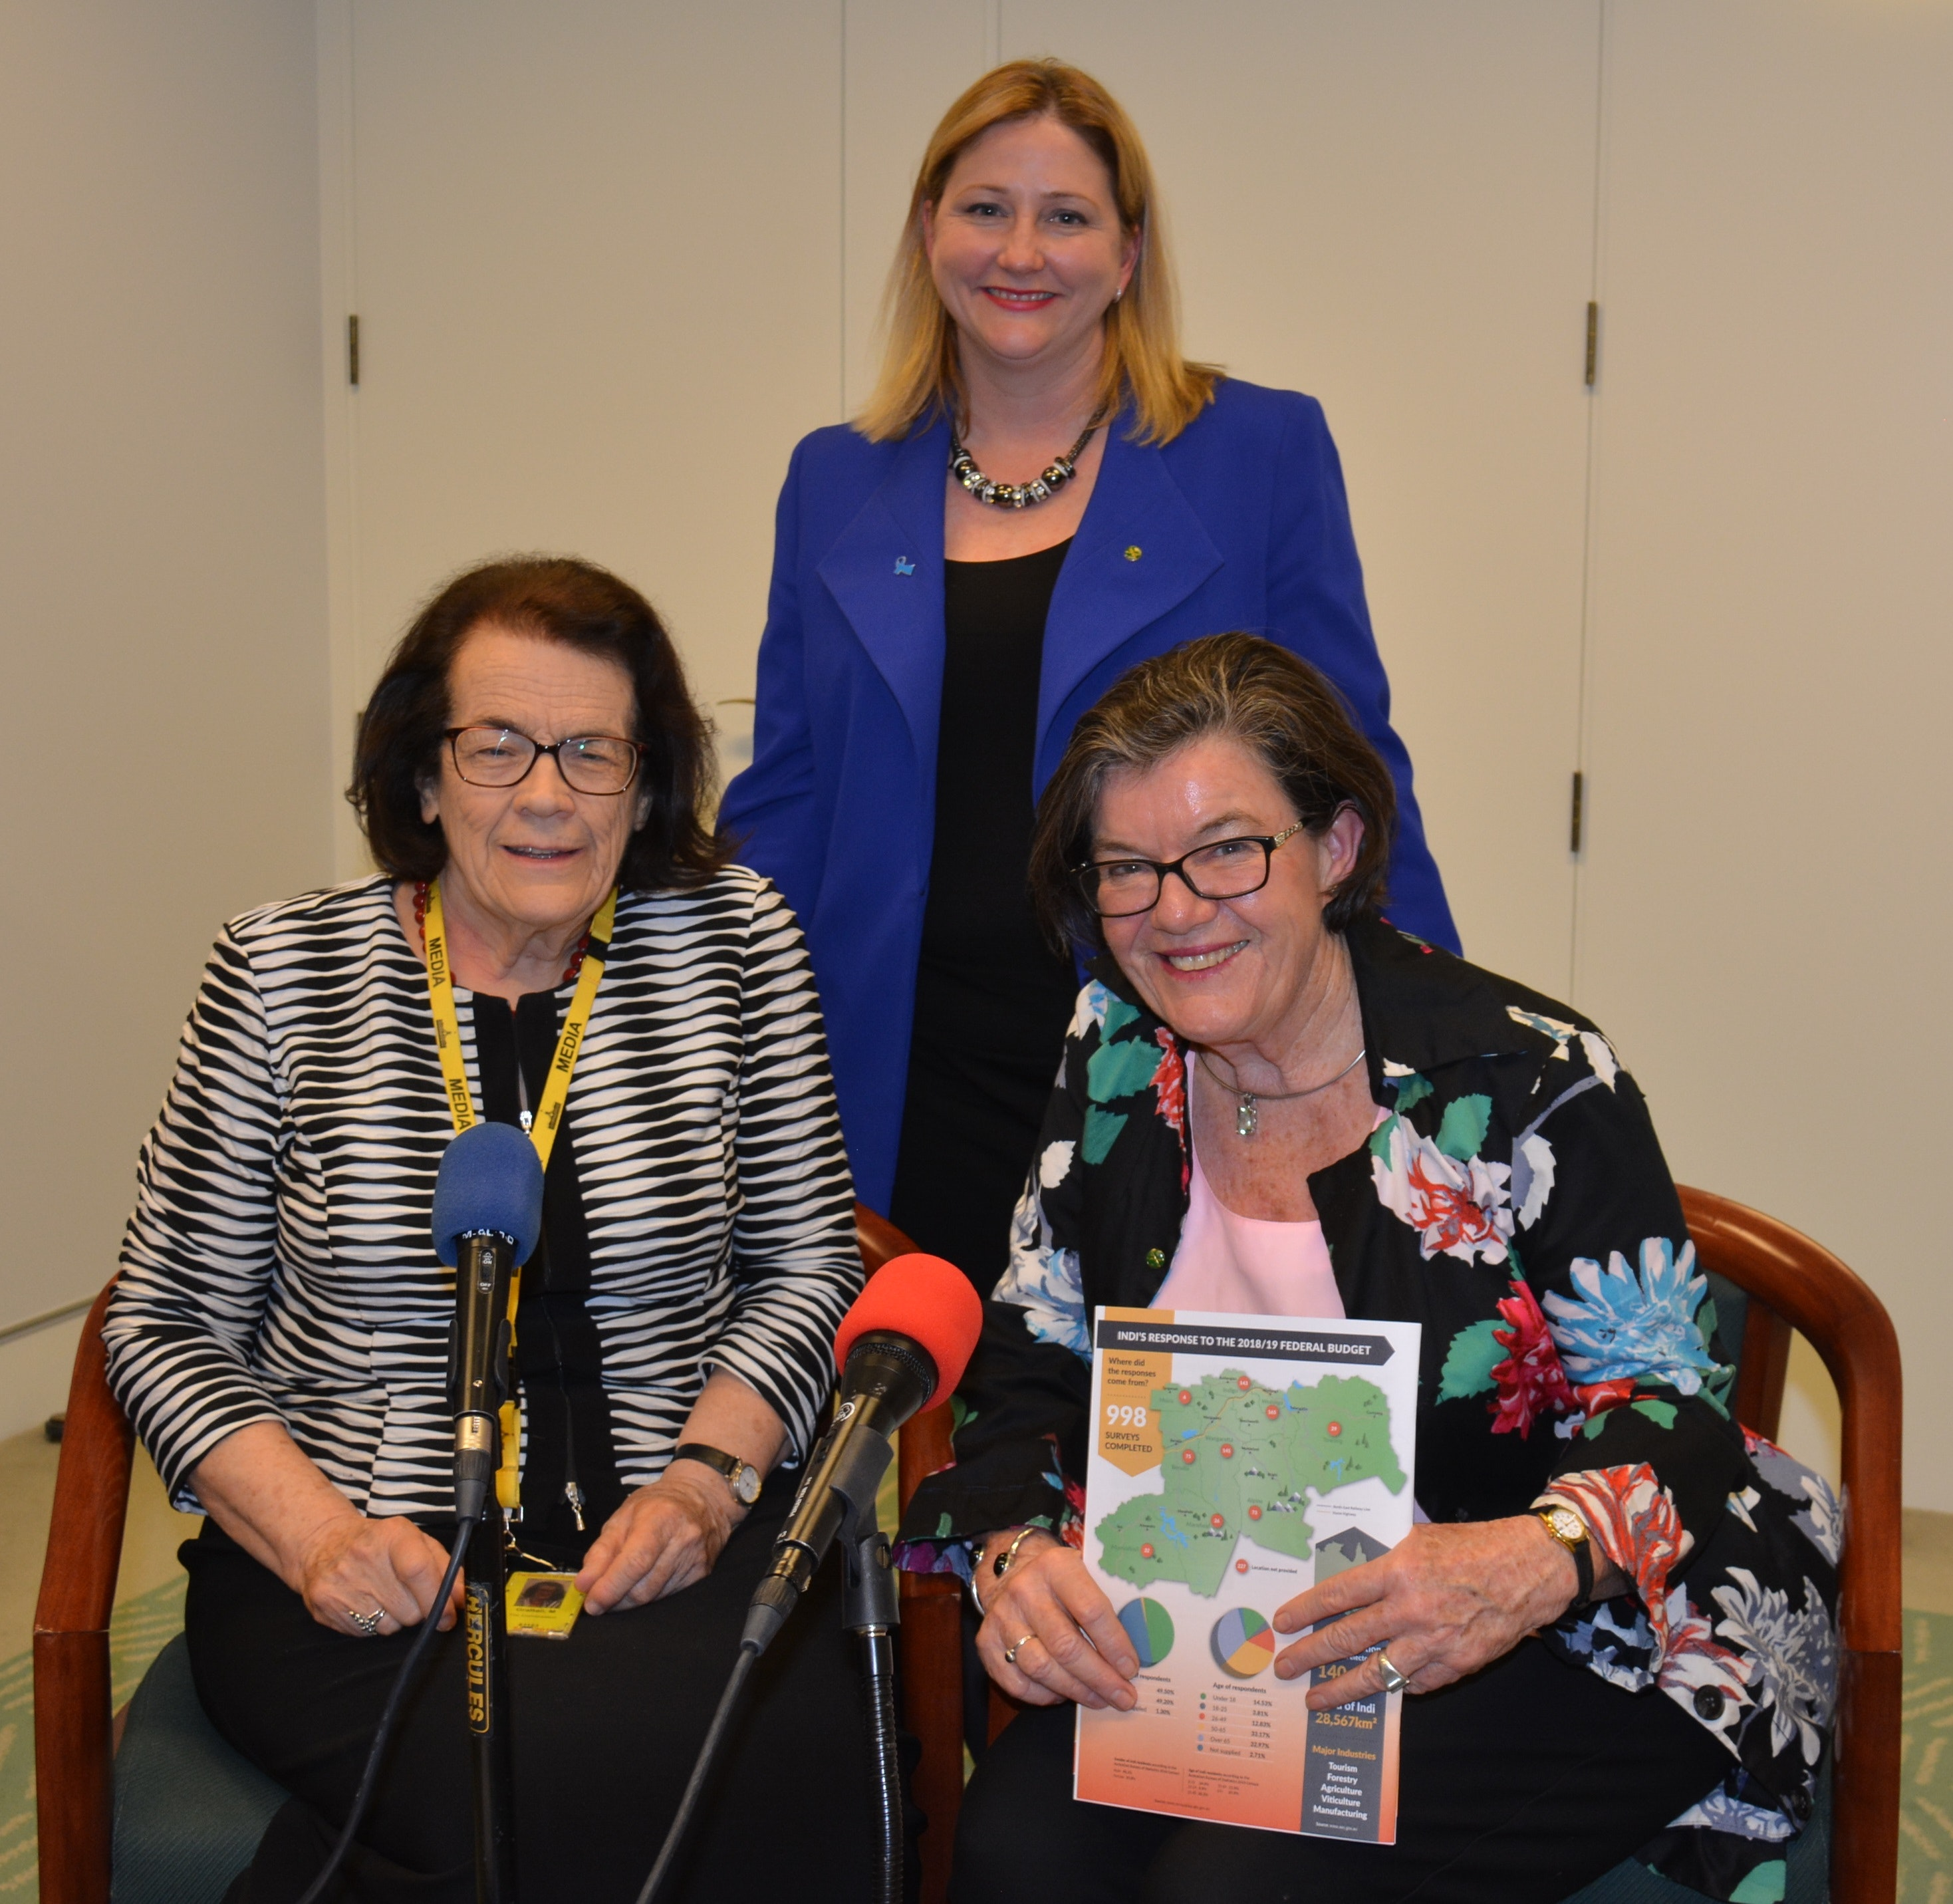 Cathy McGowan and Rebekha Sharkie on the role of community candidates